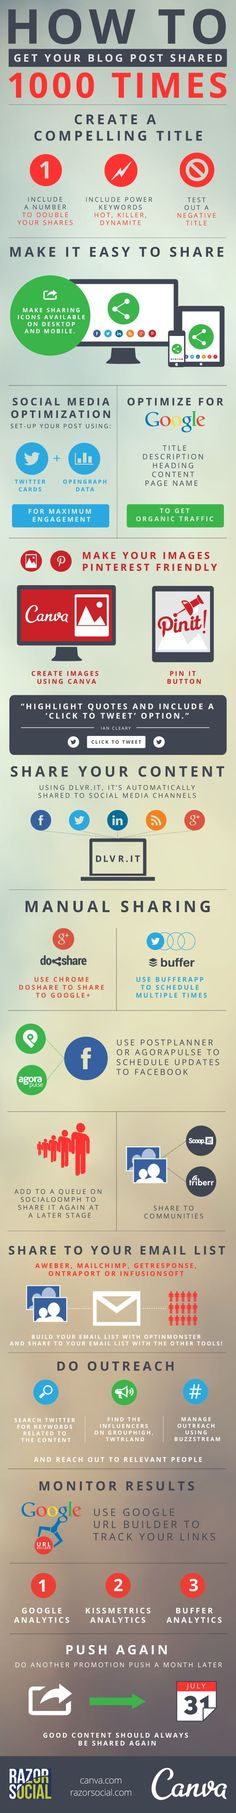 Blogging: The Ways Your Post Can Be Shared